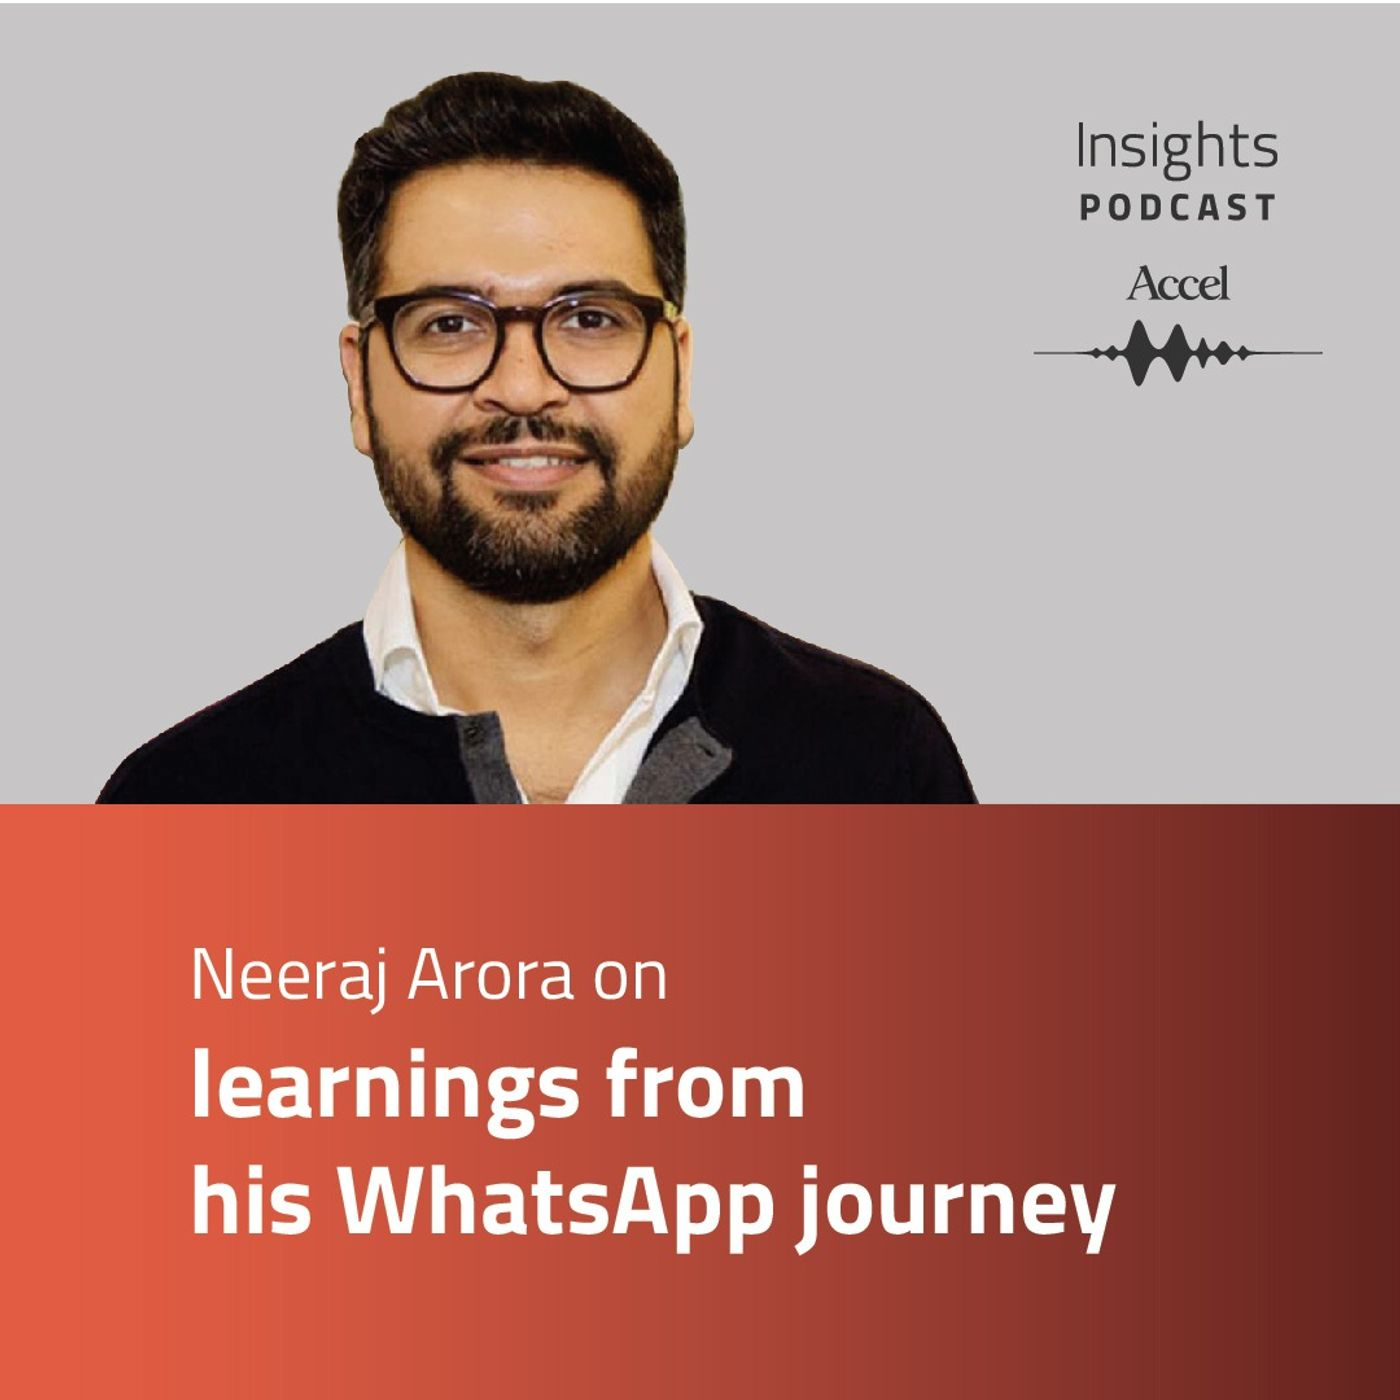 INSIGHTS #53 – Neeraj Arora on learnings from his WhatsApp journey